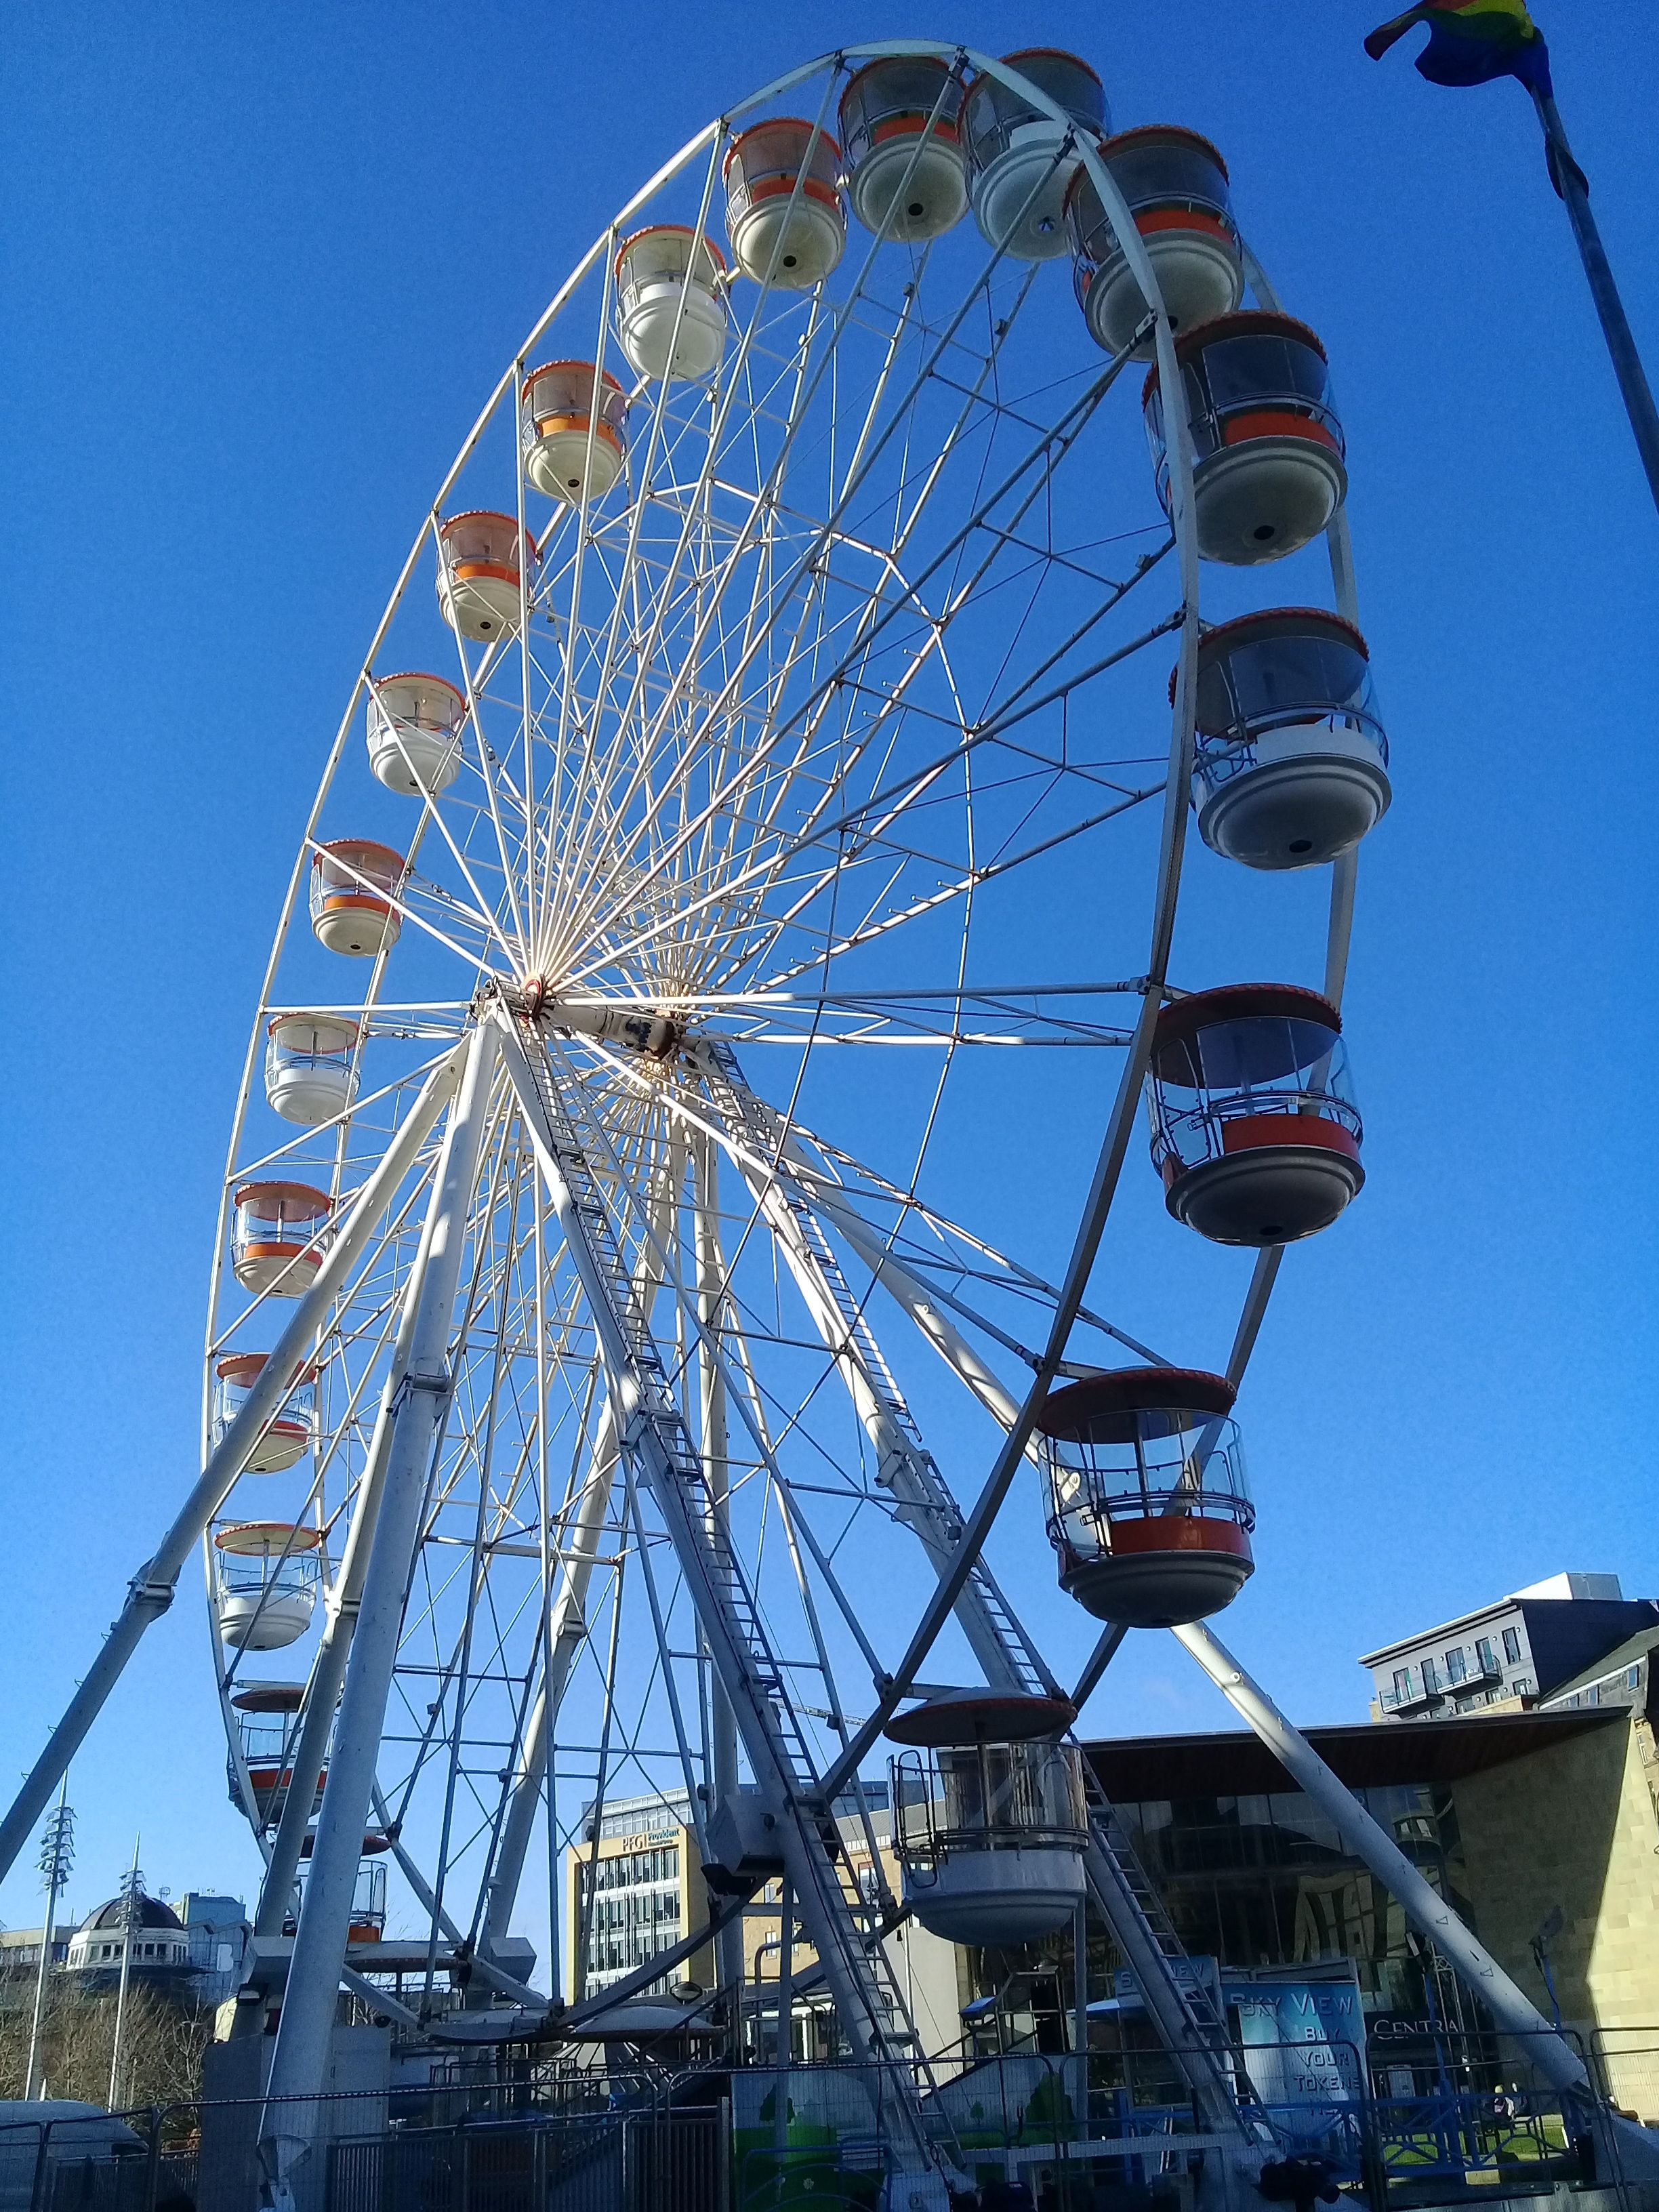 the giant wheel in